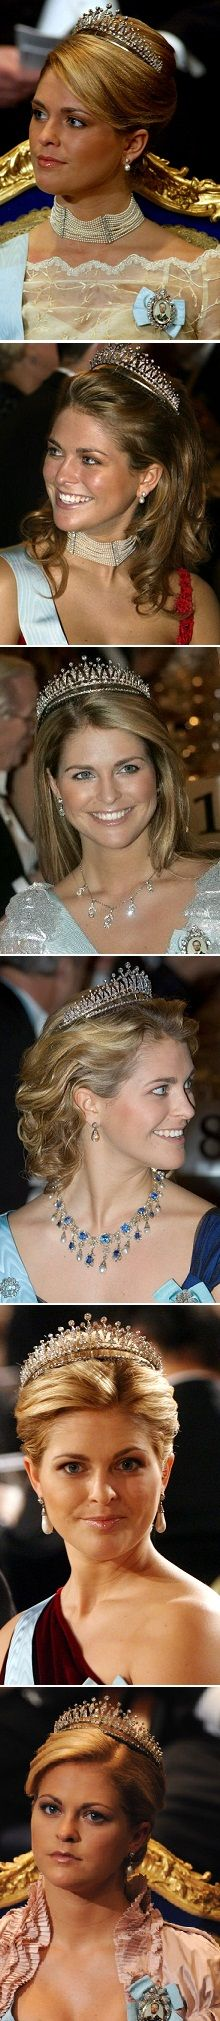 The mordern fringe tiara has been worn by princess Madeleine many times at the nobels  photo 1; nobel 2002  photo 2; nobel 2003  photo 3; nobel 2005  photo 4; nobel 2006  photo 5; nobel 2007  photo 6; nobel 2008